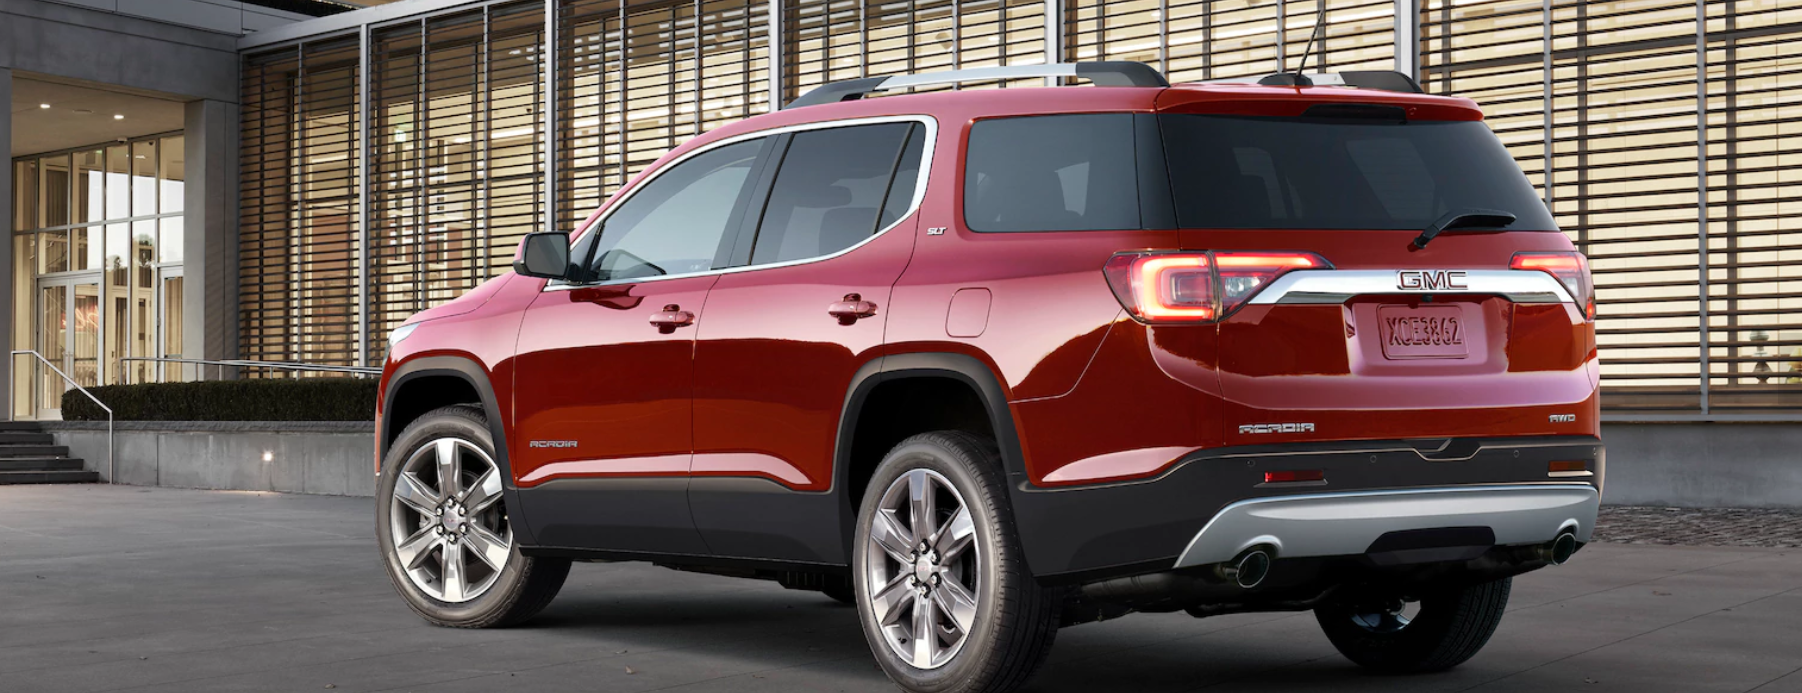 Gmc Acadia Lease >> Gmc Acadia Lease Deals Prices Cicero Ny